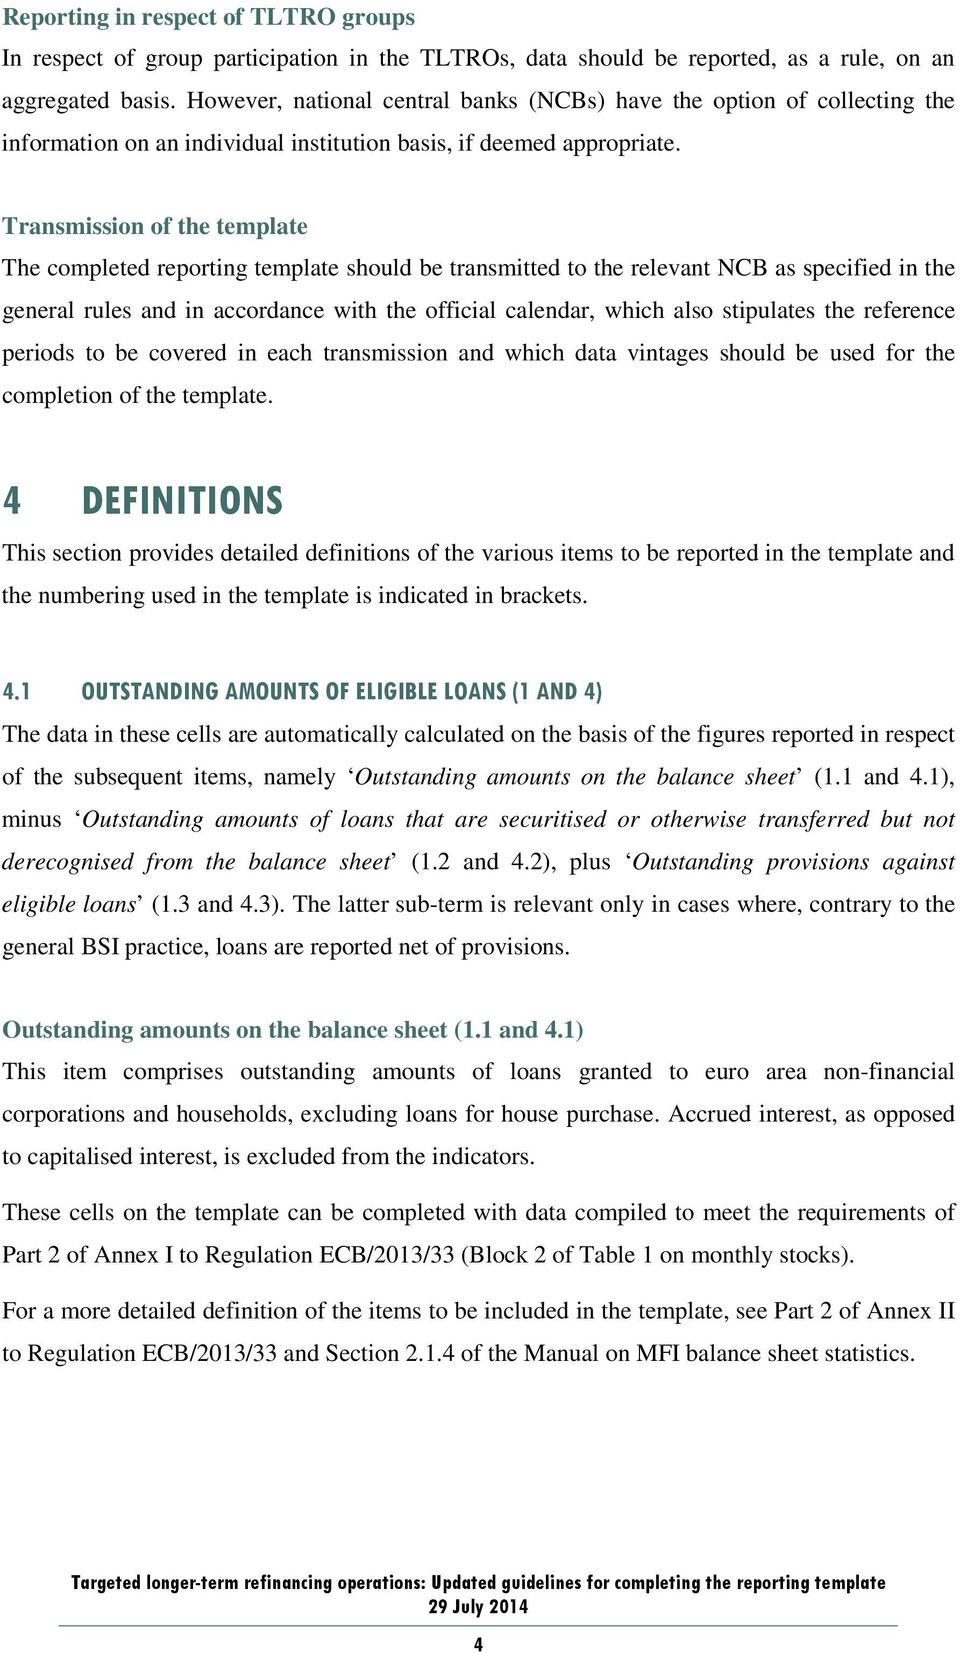 Transmission of the template The completed reporting template should be transmitted to the relevant NCB as specified in the general rules and in accordance with the official calendar, which also